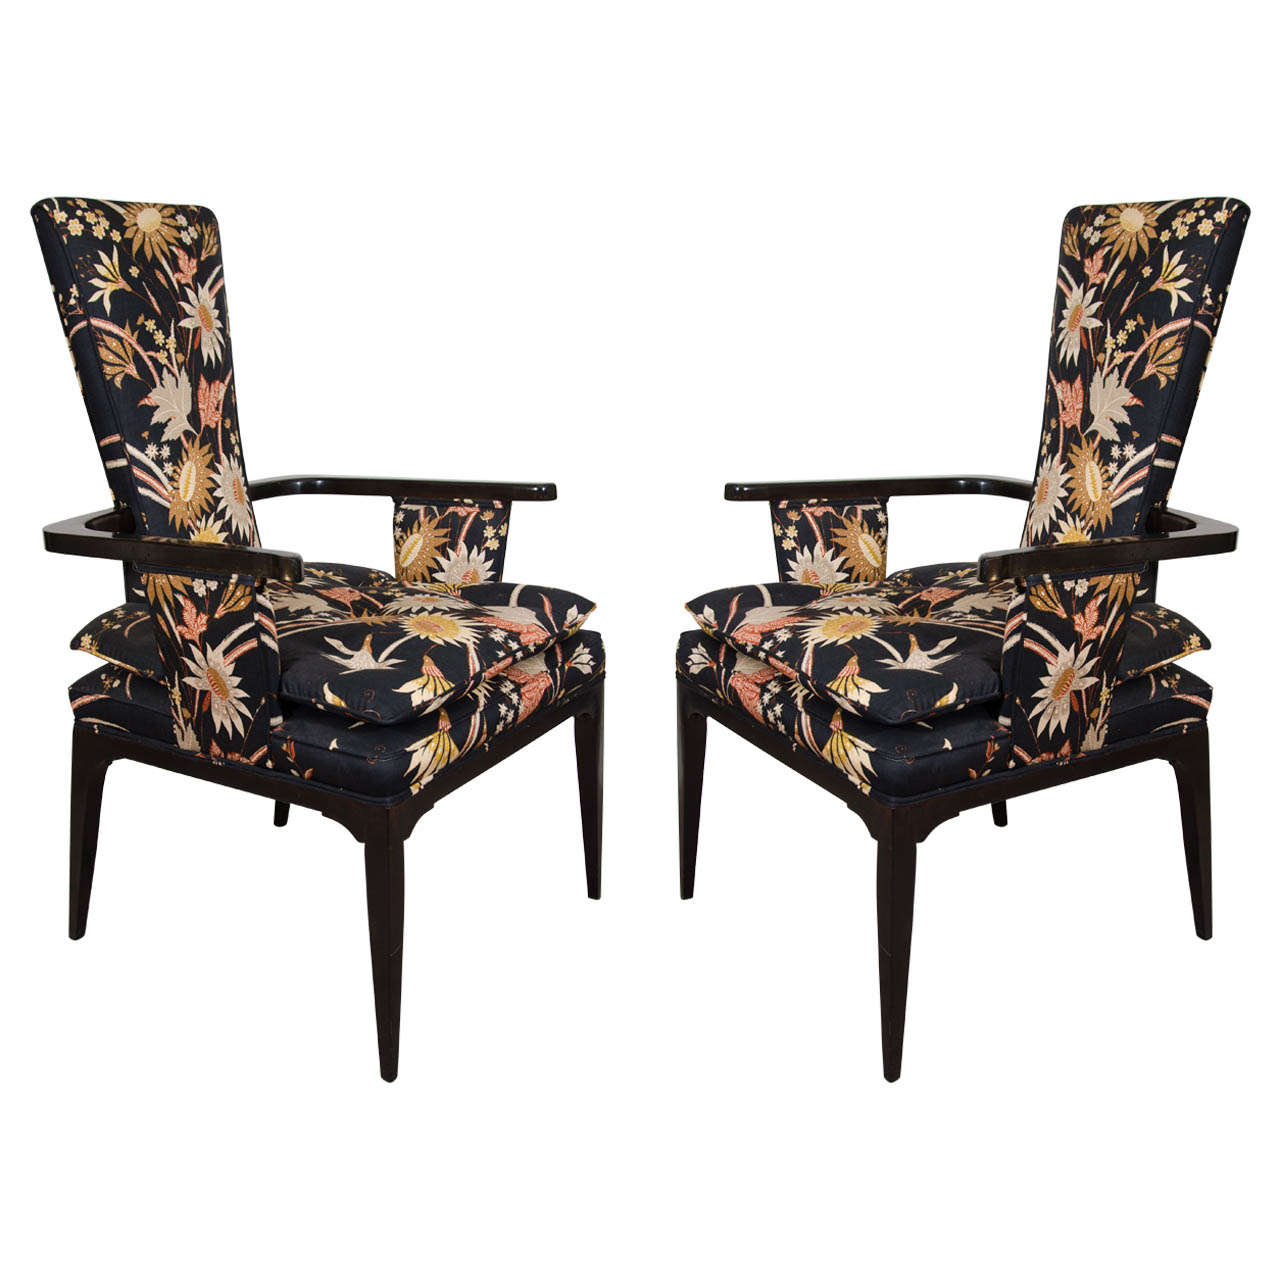 A Pair Of Hollywood Regency Style Armchairs In The Style Of Tommi Parzinger At 1stdibs